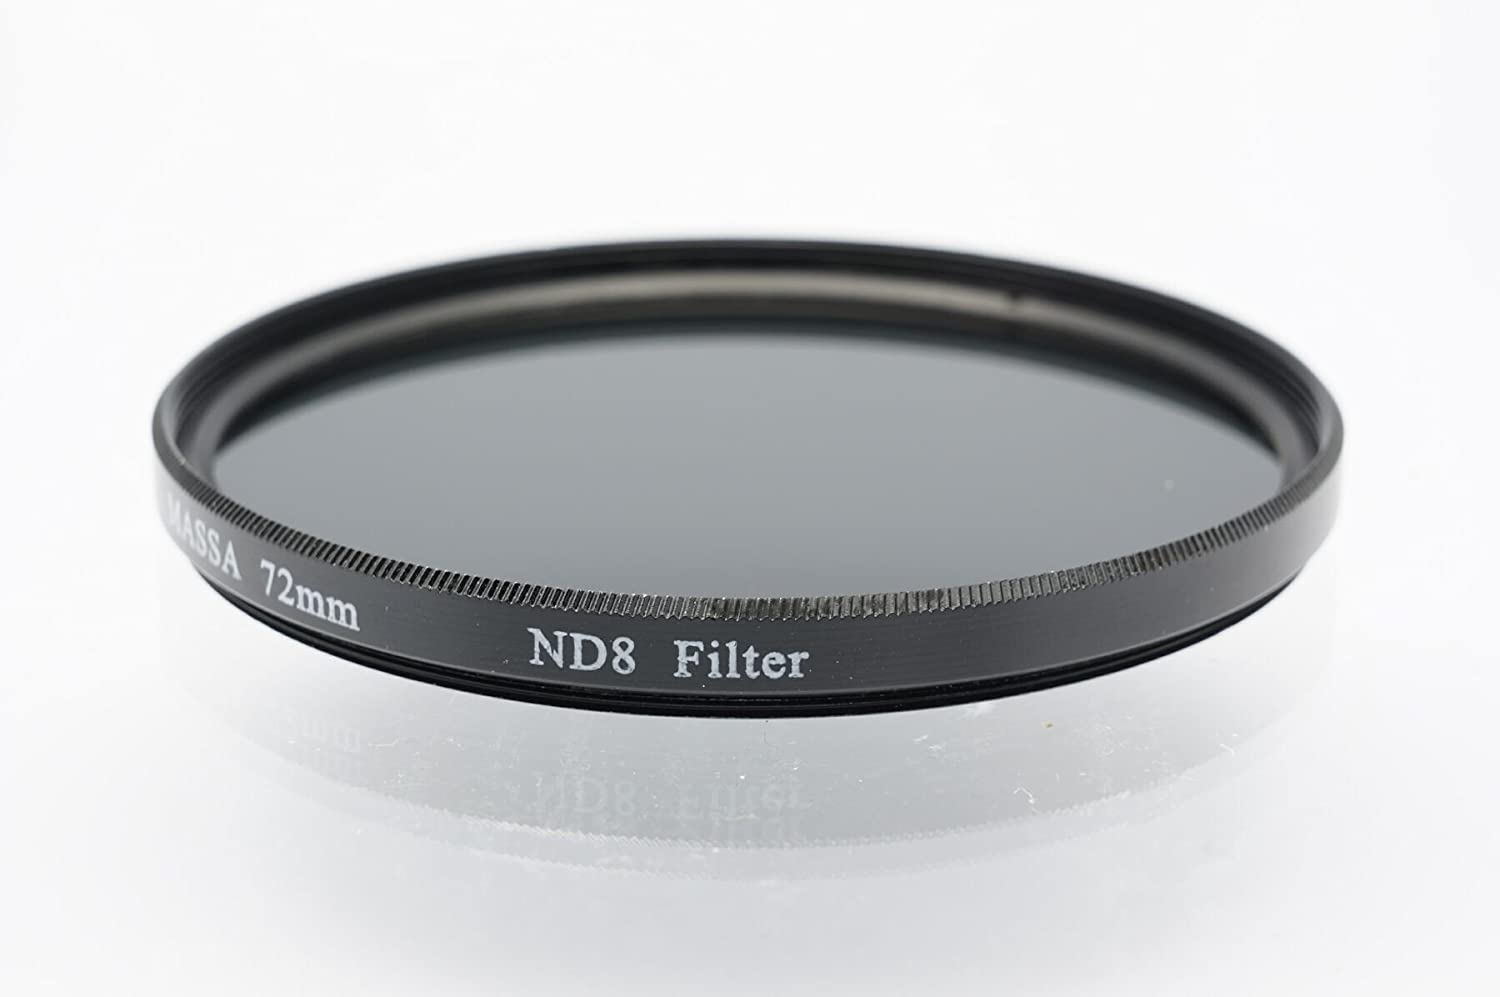 Massa 72mm Neutral Density ND8 Filter for Canon EF-S 15-85mm f//3.5-5.6 IS USM